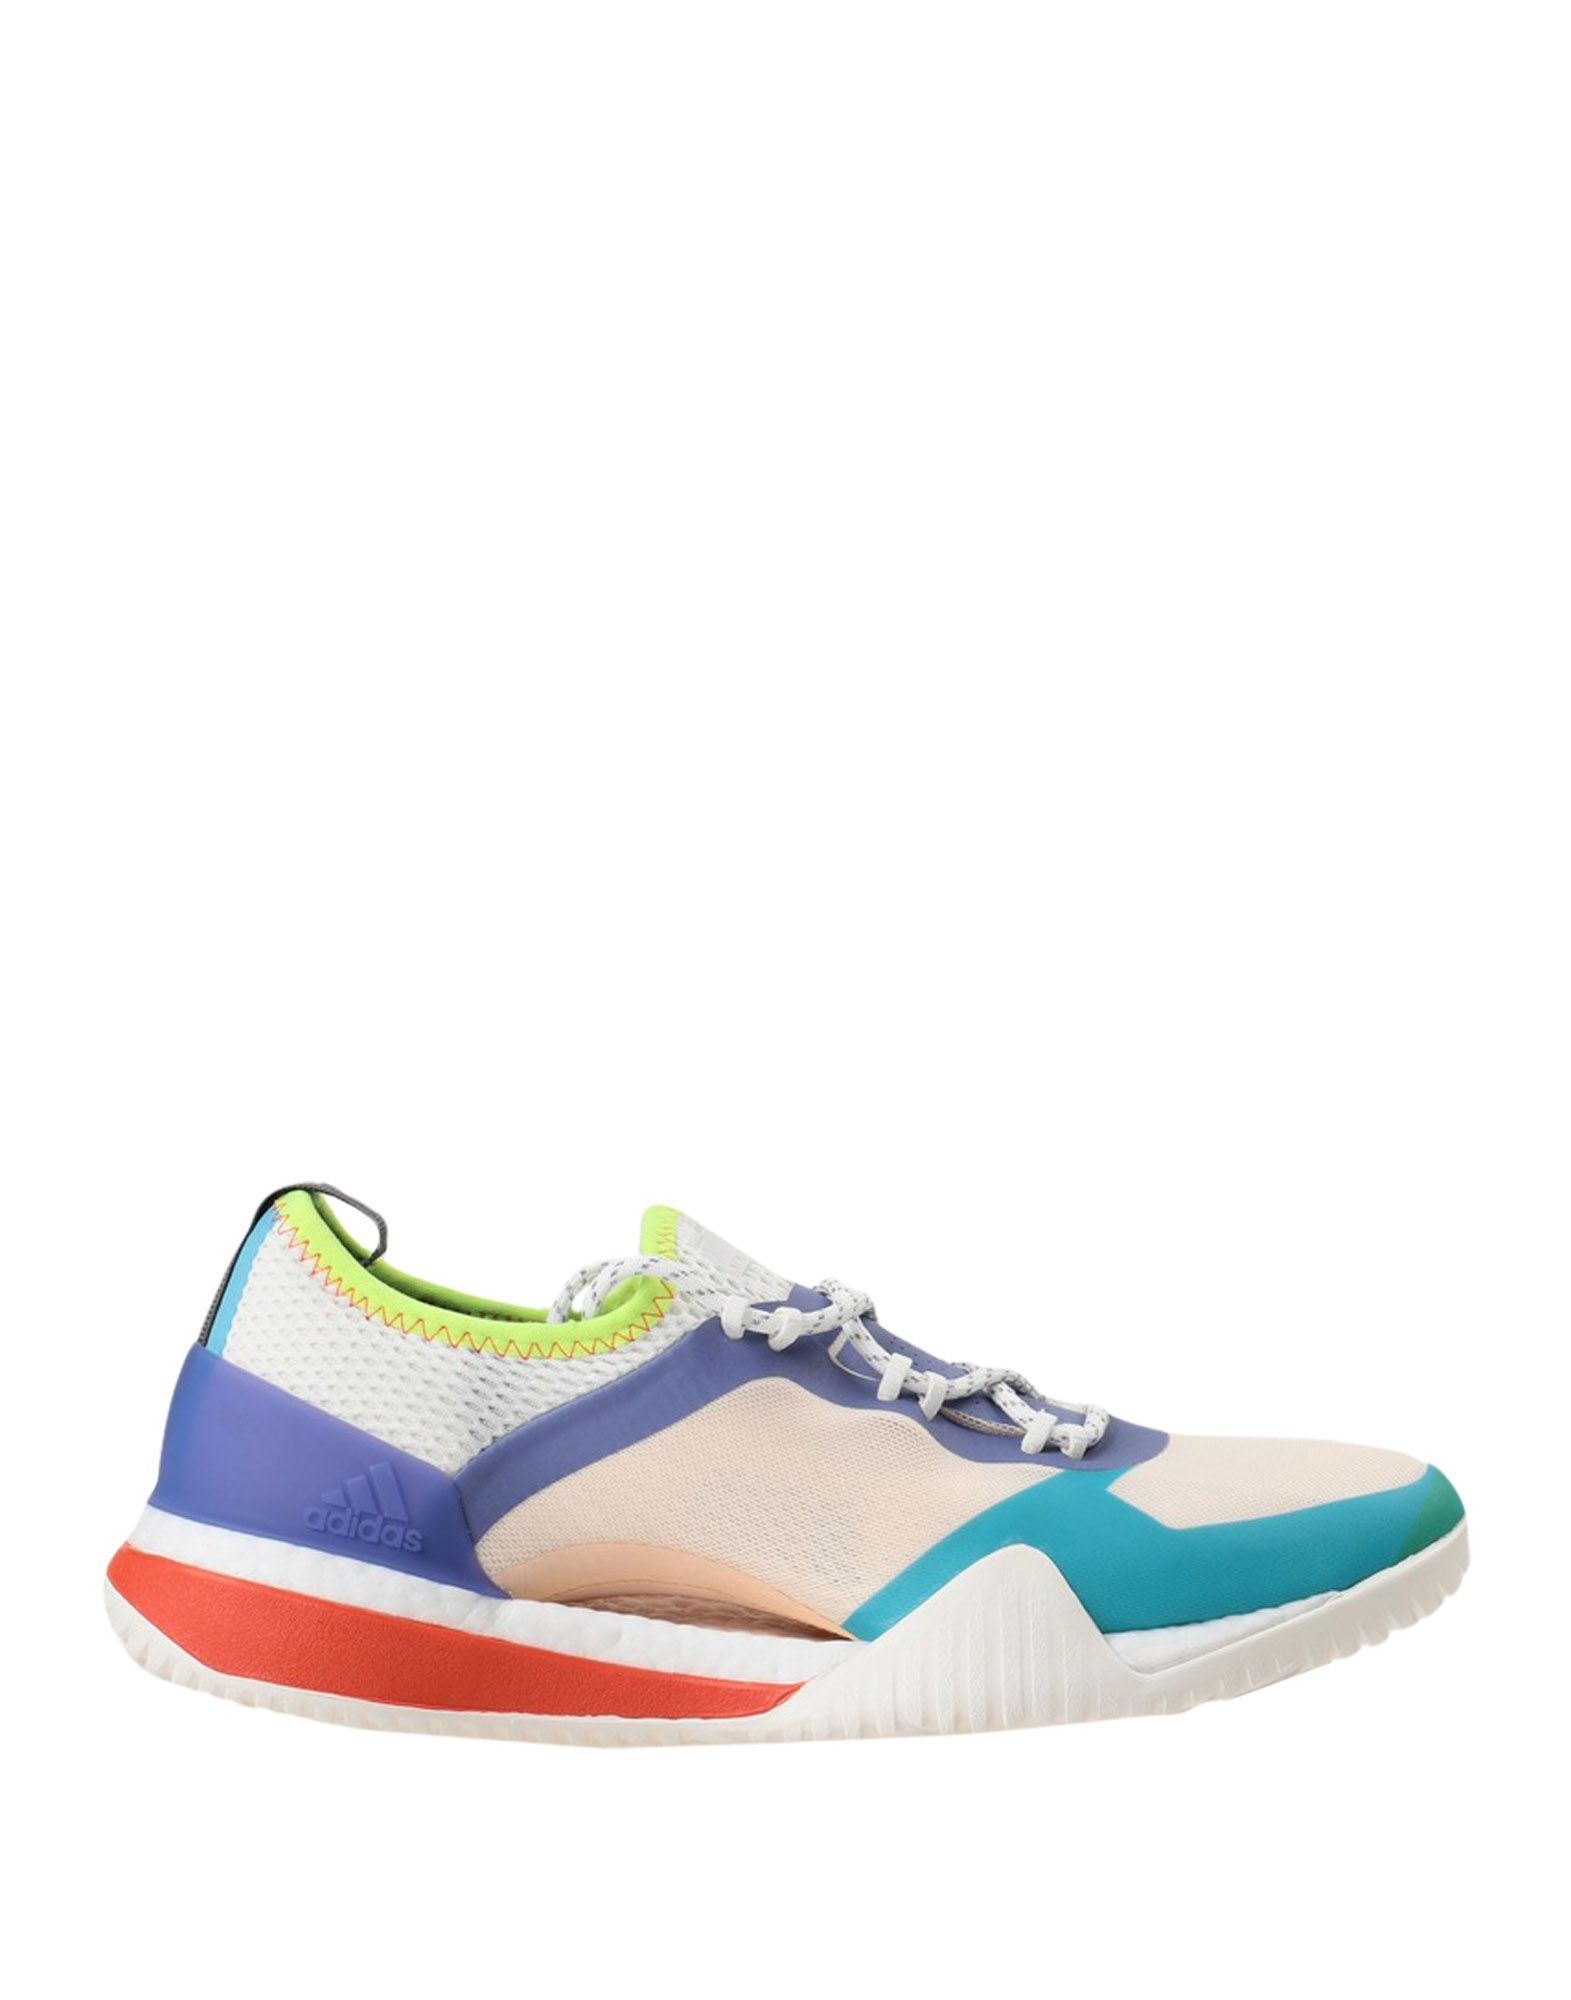 269afbd865494 Adidas By Stella Mccartney Women s Sneakers - Spring-Summer and Fall-Winter  Collections